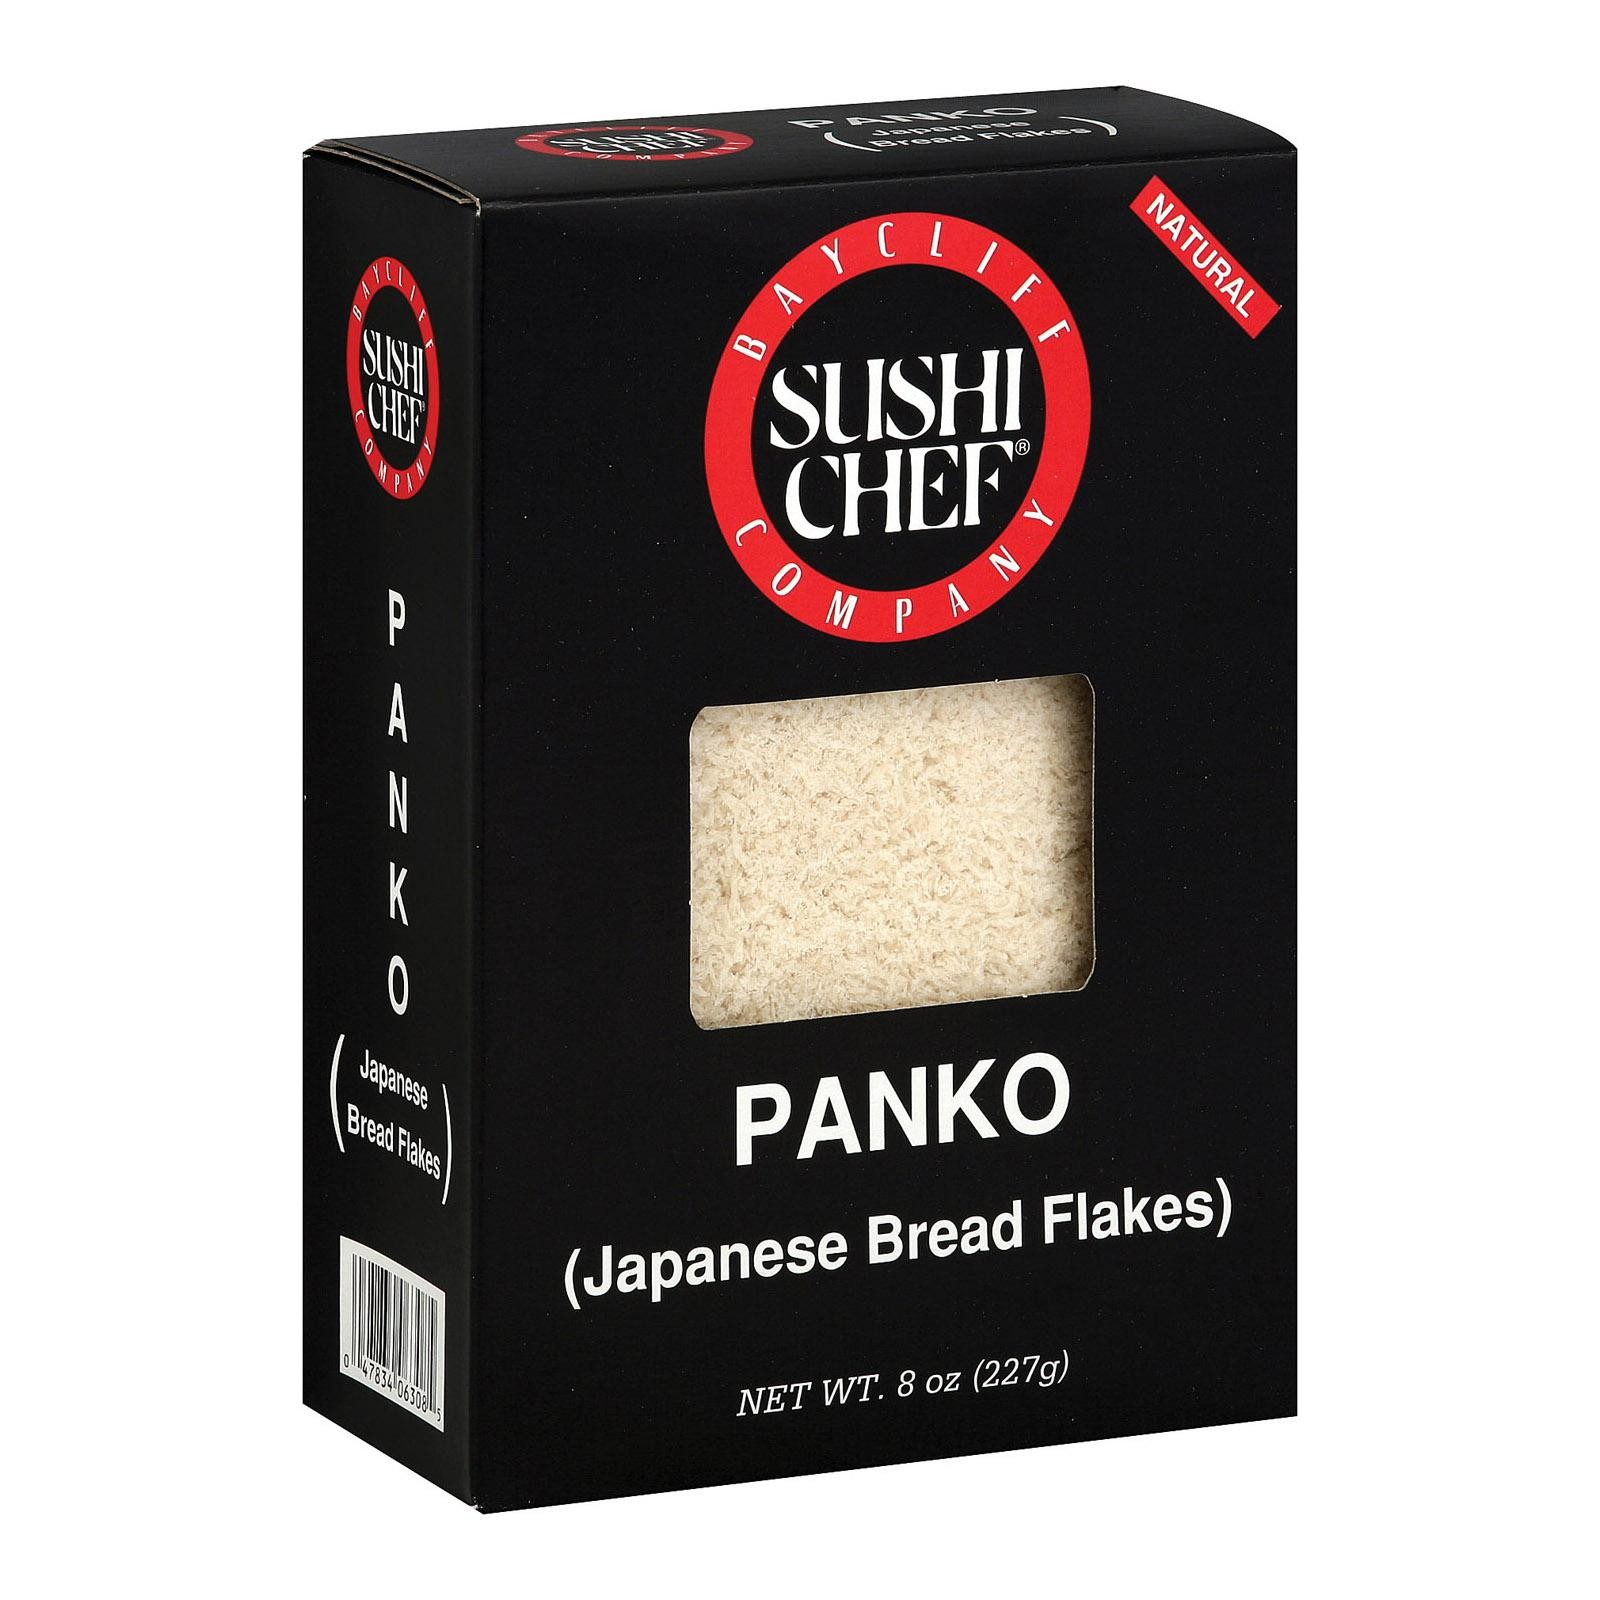 Sushi Chef Japanese Bread Flakes Panko - Pack of 6 - 8 Oz.